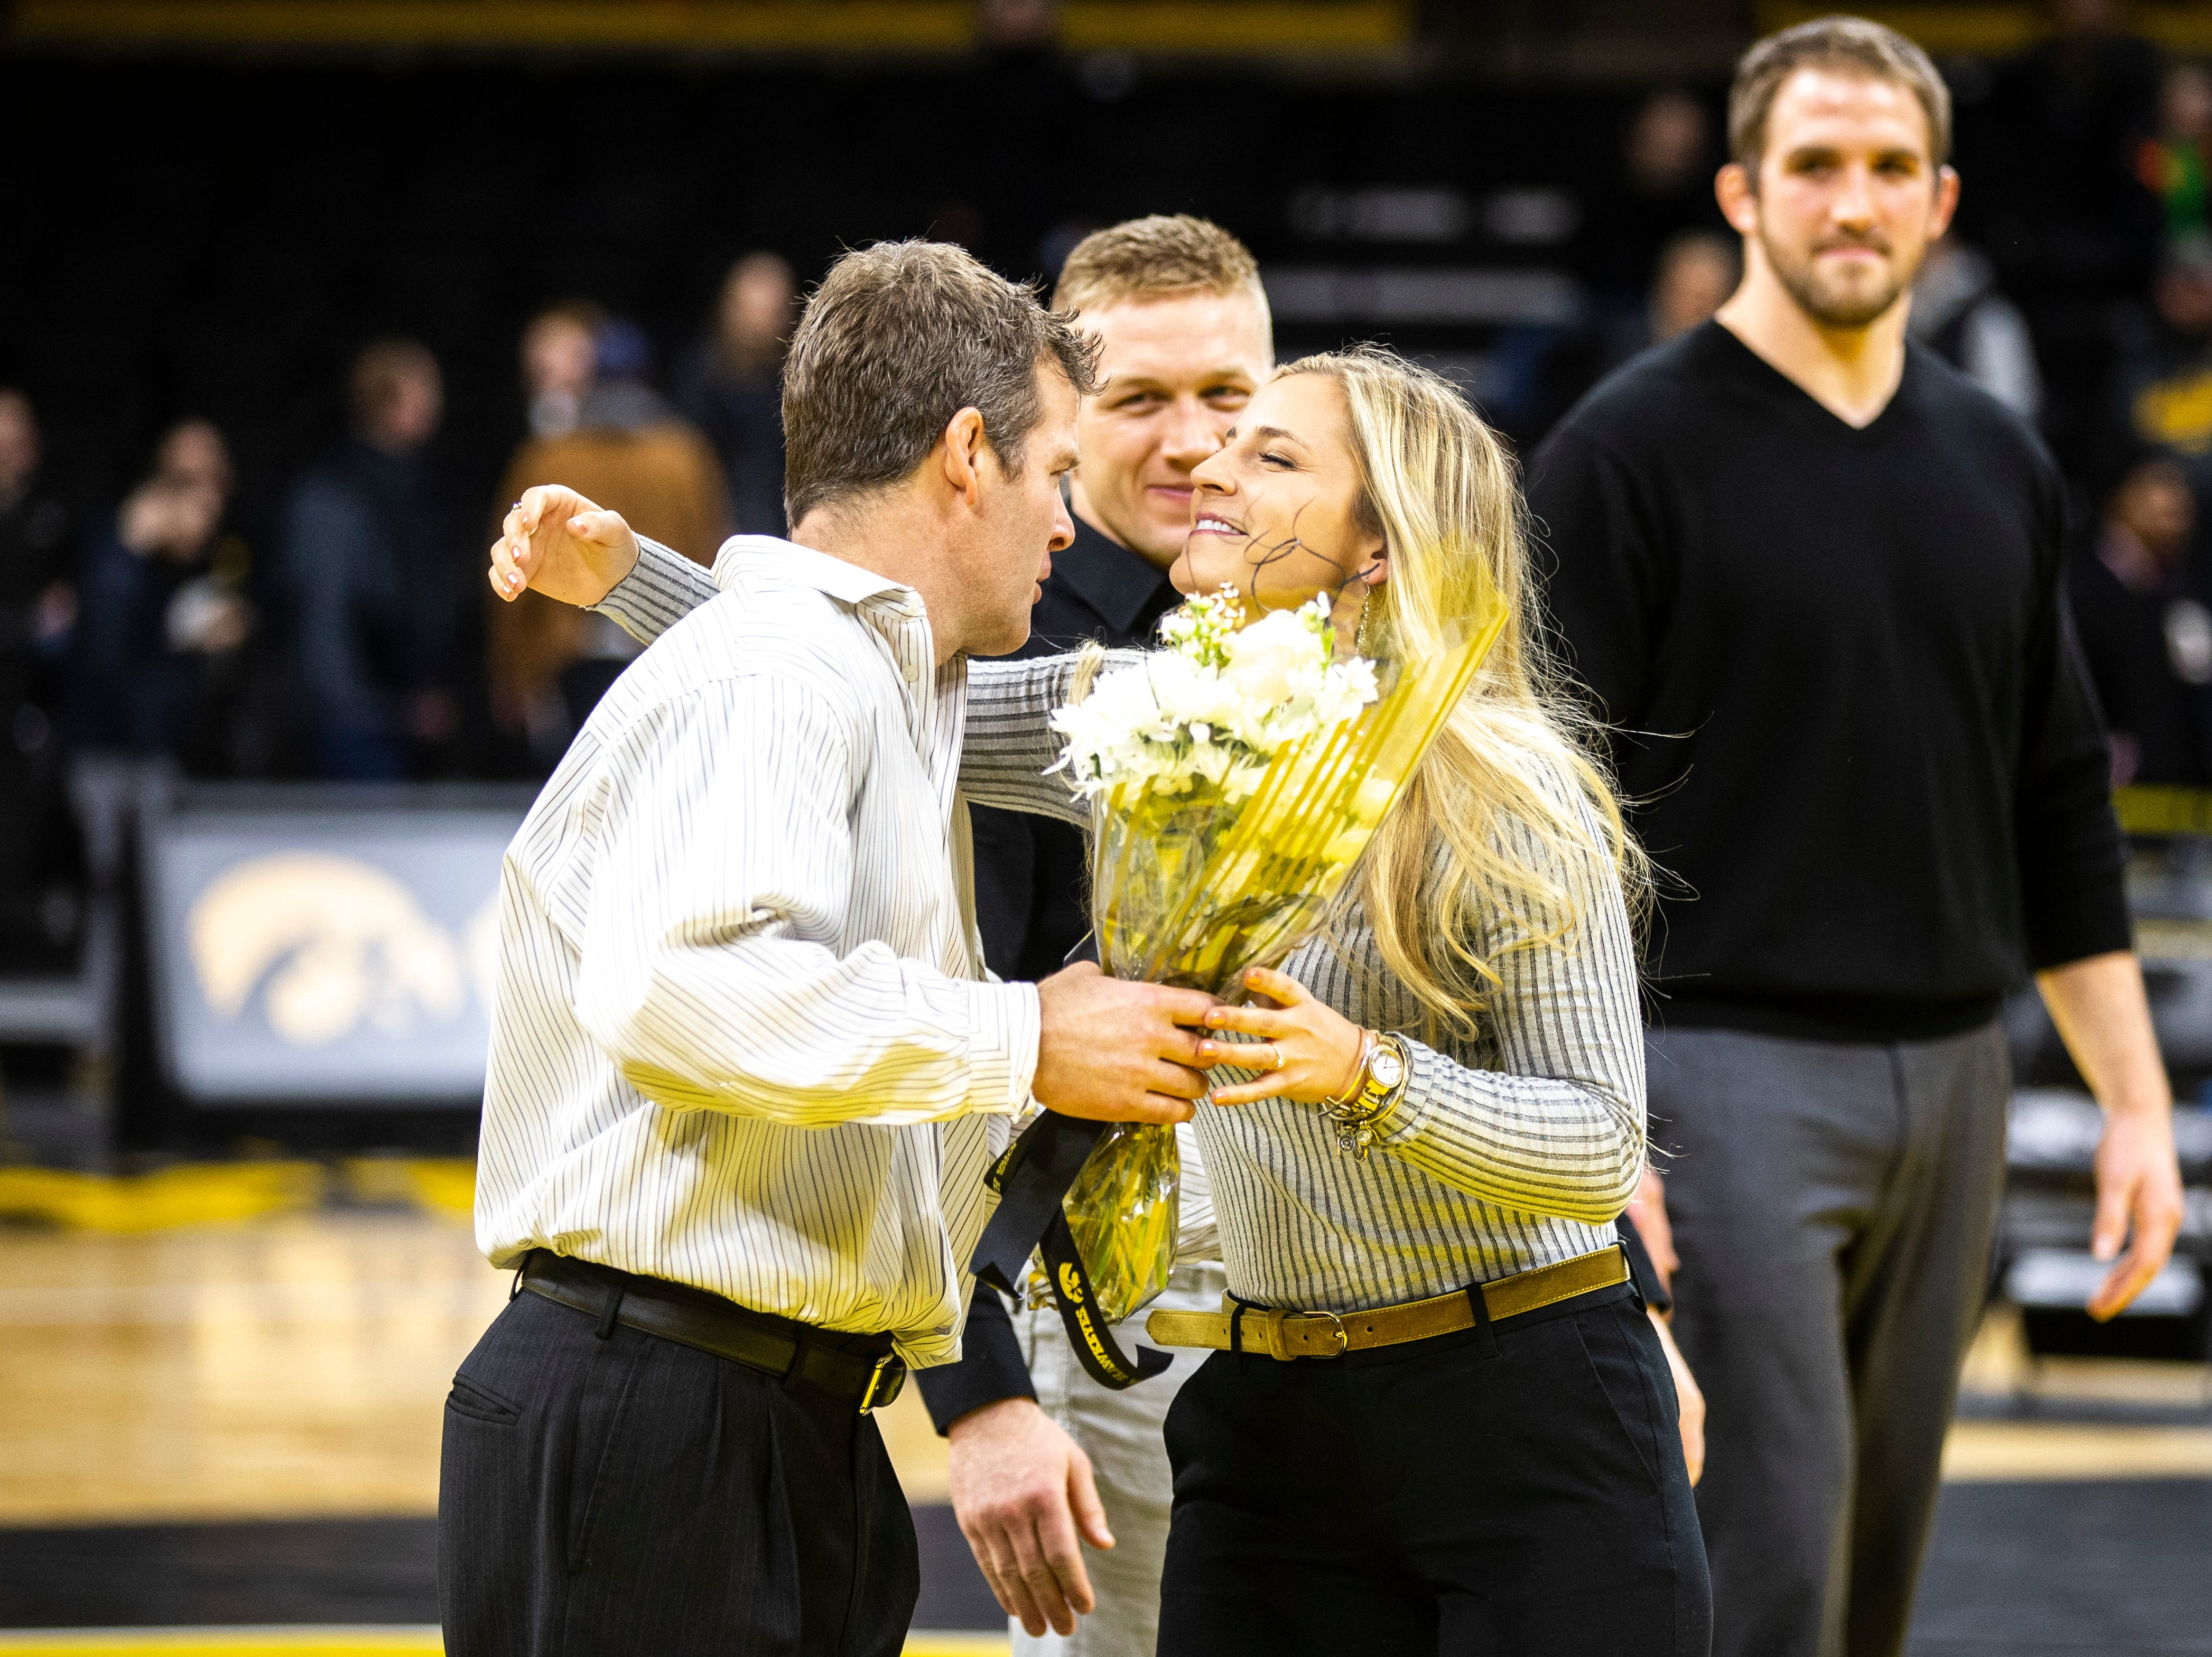 Iowa head coach Tom Brands, left, gives Iowa senior manager Moriah Stickley a hug during a NCAA Big Ten Conference wrestling dual on Friday, Feb. 15, 2019 at Carver-Hawkeye Arena in Iowa City, Iowa.